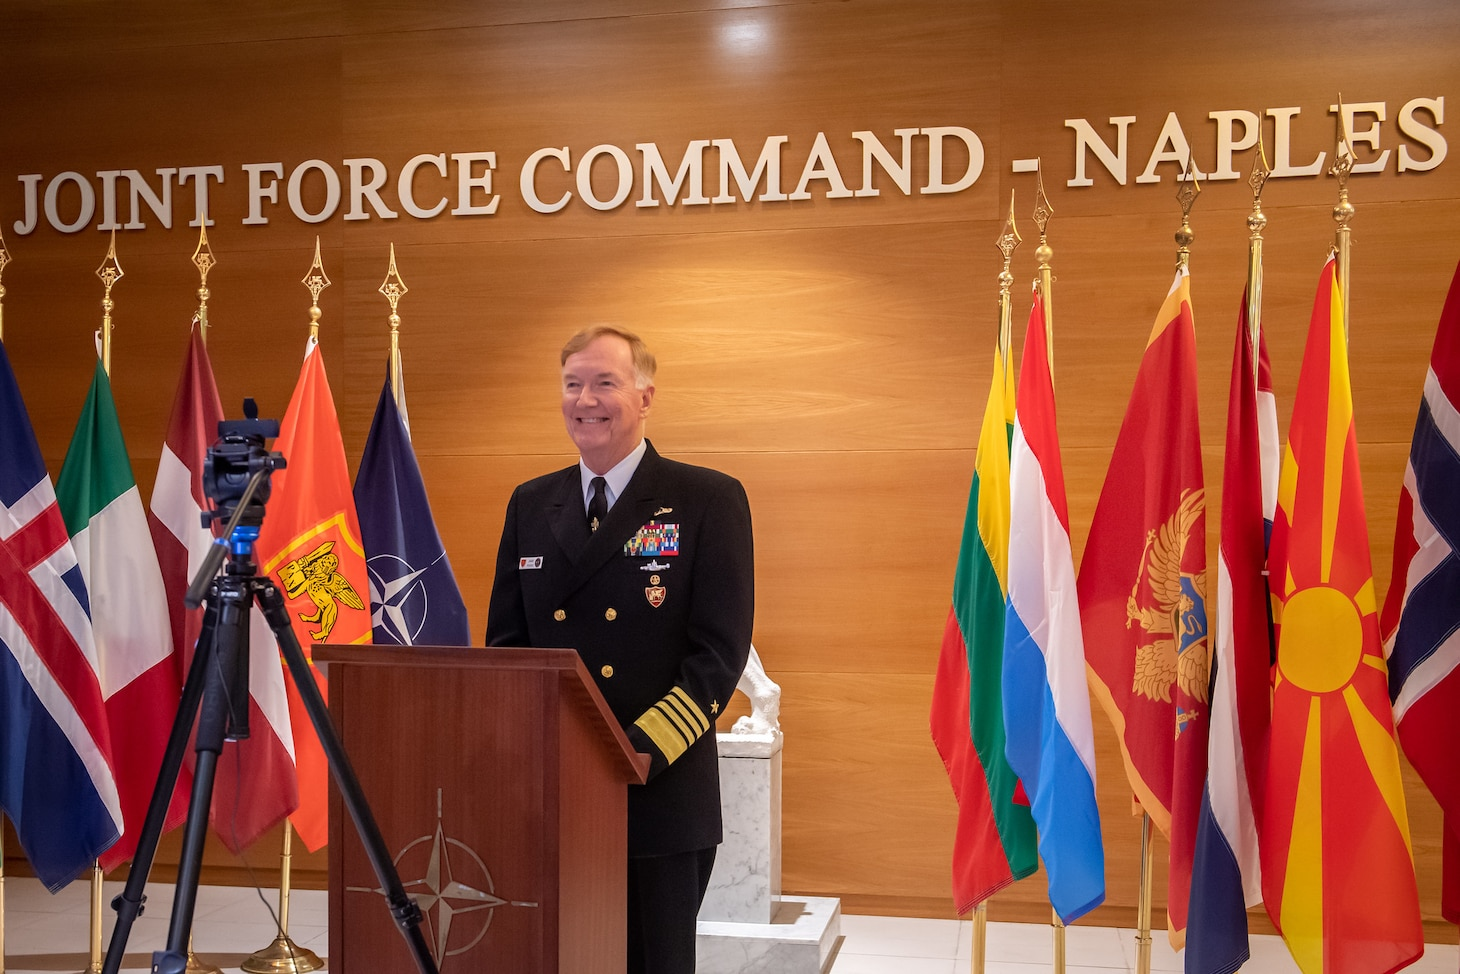 NAPLES, Italy (April 30, 2020) - Adm. James G. Foggo III, commander, U.S. Naval Forces Europe-Africa, and commander, Allied Joint Force Command Naples, speaks during the U.S. Naval Institute's 147th annual meeting, held virtually, April 30, 2020. CNE-CNA-C6F, headquartered in Naples, Italy, oversees joint and naval operations, often in concert with Allied, joint, and interagency partners, in order to advance U.S. national interests and security and stability in Europe and Africa. (Photo by Master Sergeant OR-8 Florian Fergen/Released)